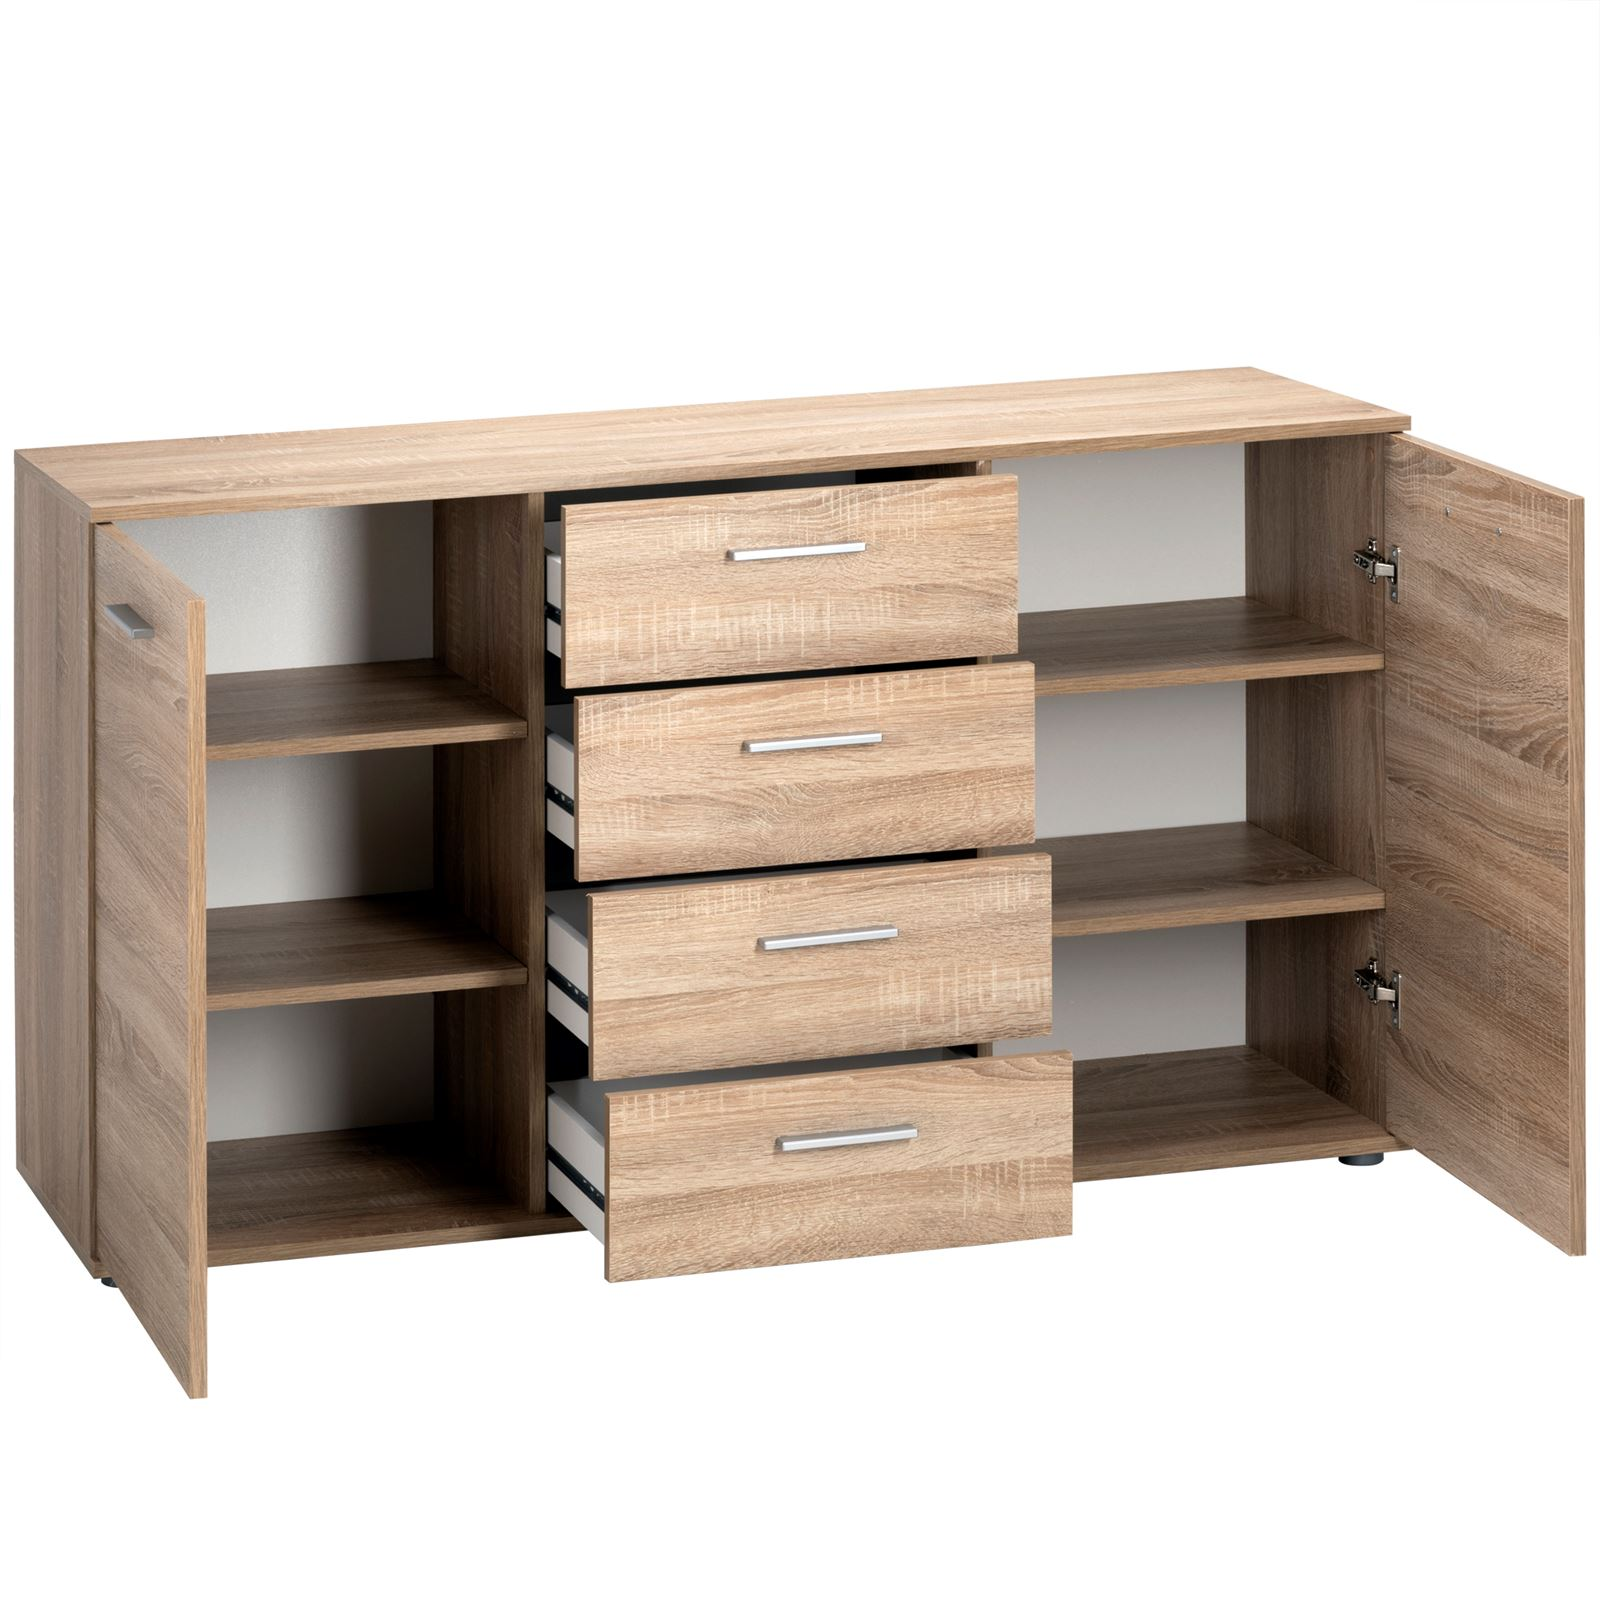 kommode sideboard anrichte schrank highboard 2 t ren 4 schubladen. Black Bedroom Furniture Sets. Home Design Ideas